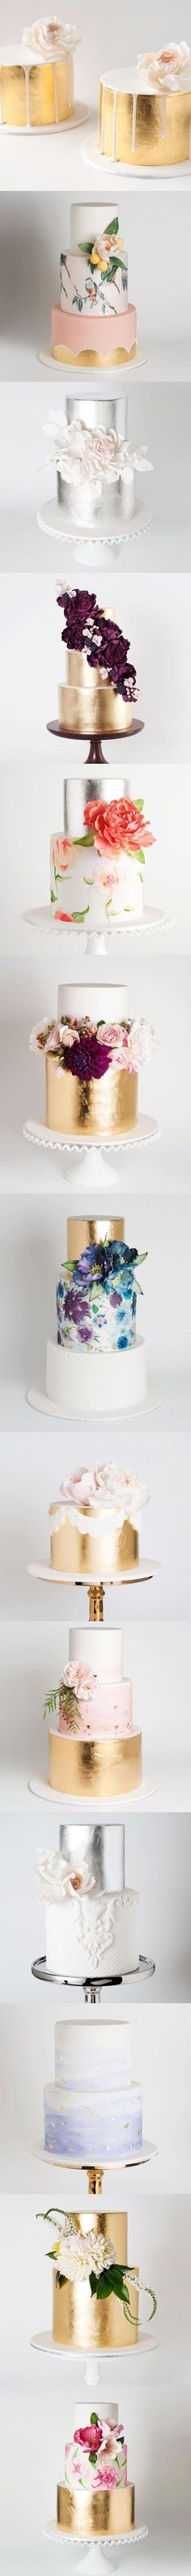 Tartas y pasteles de boda en color oro, y flores, diseños 2016. metallic cakes - my kind of wedding cakes! Bring on the gold :) | https://lomejordelaweb.es/